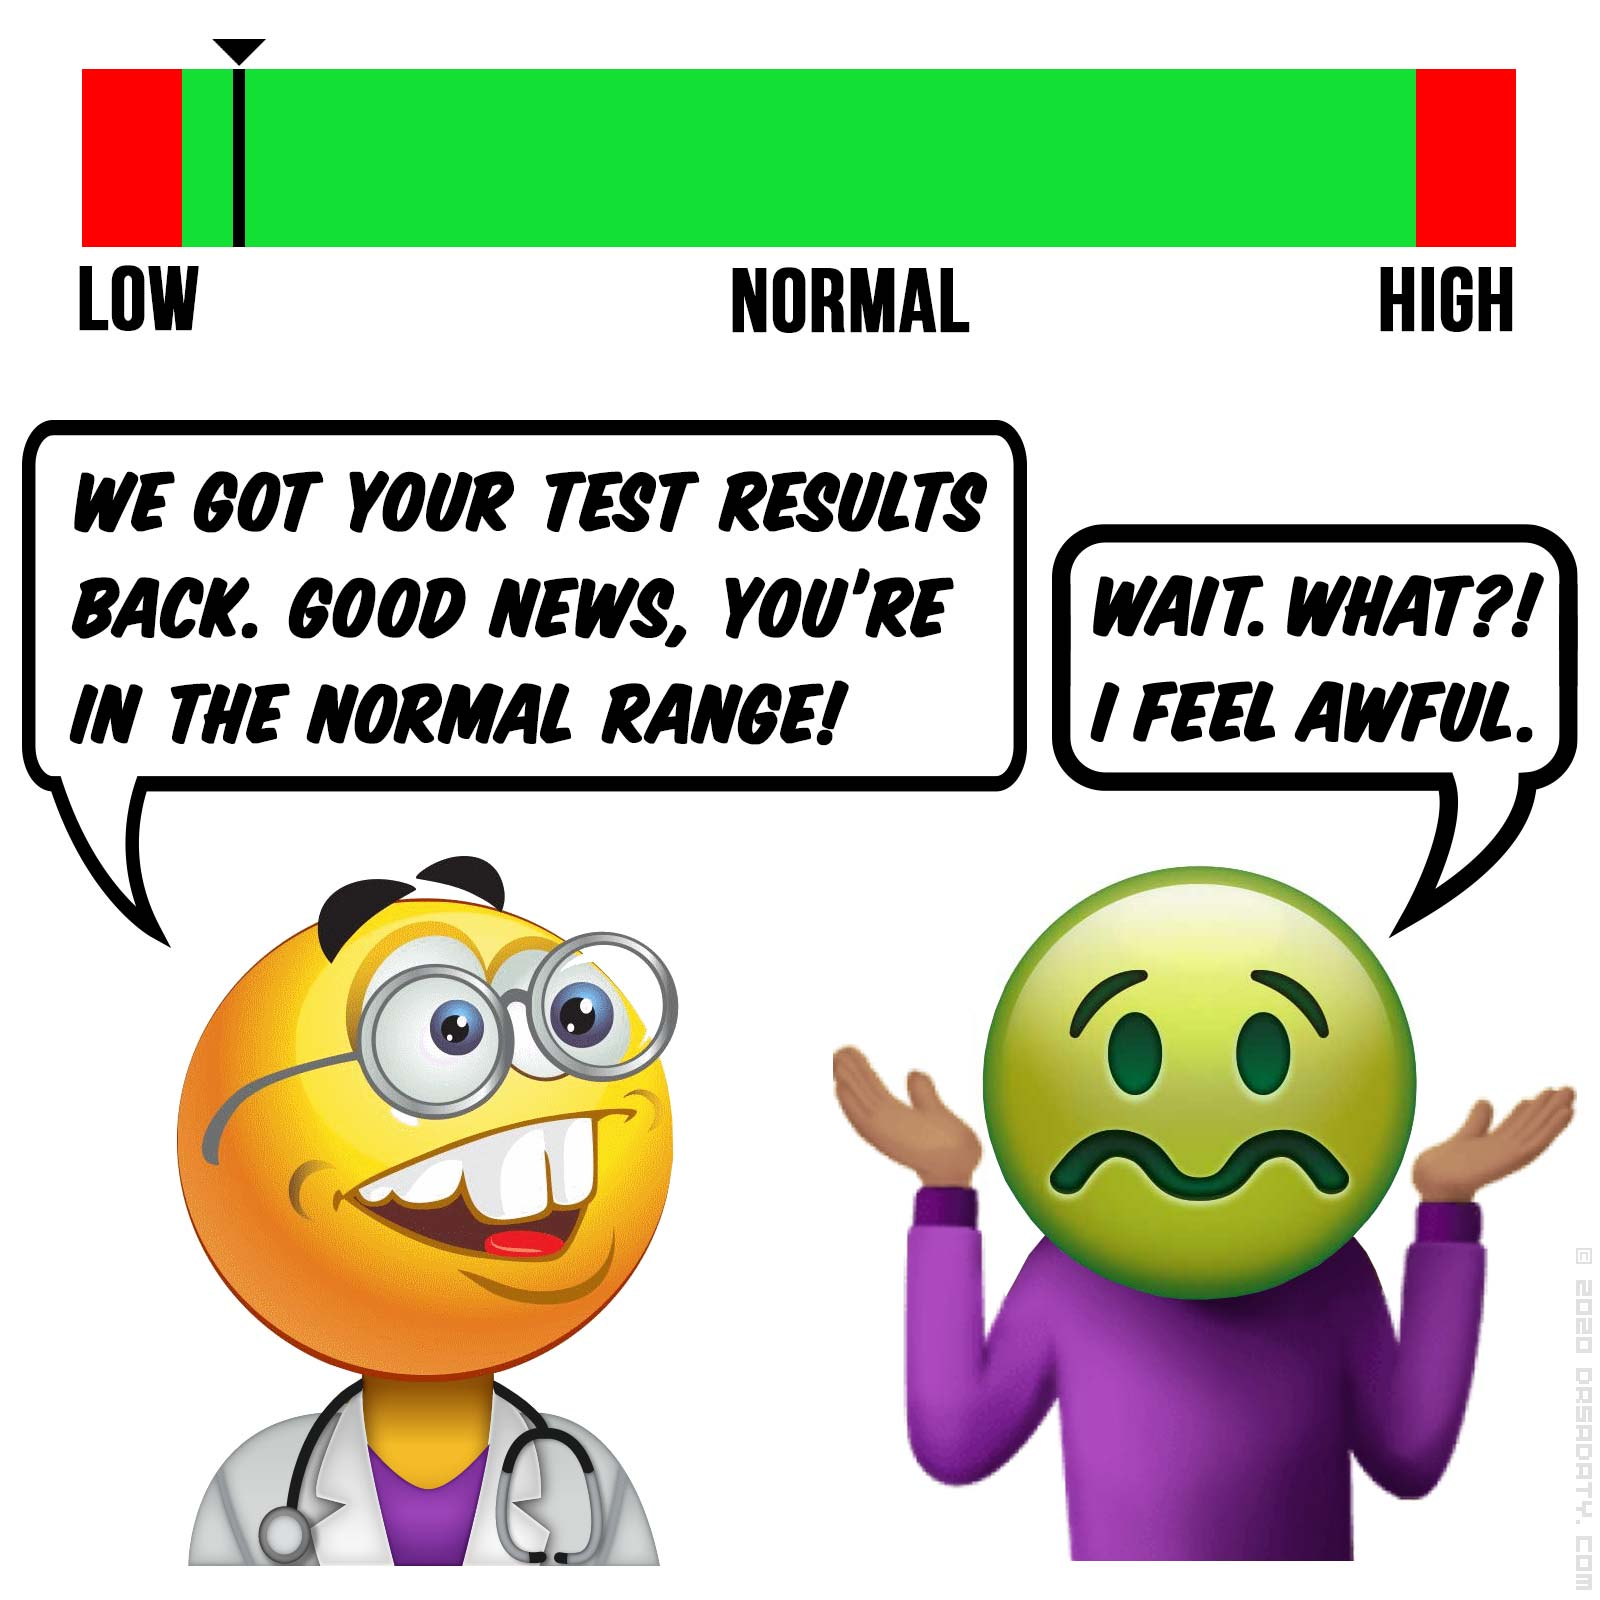 You're In The Normal Range. Wait. What?! Dr. Sadaty's Share The Health